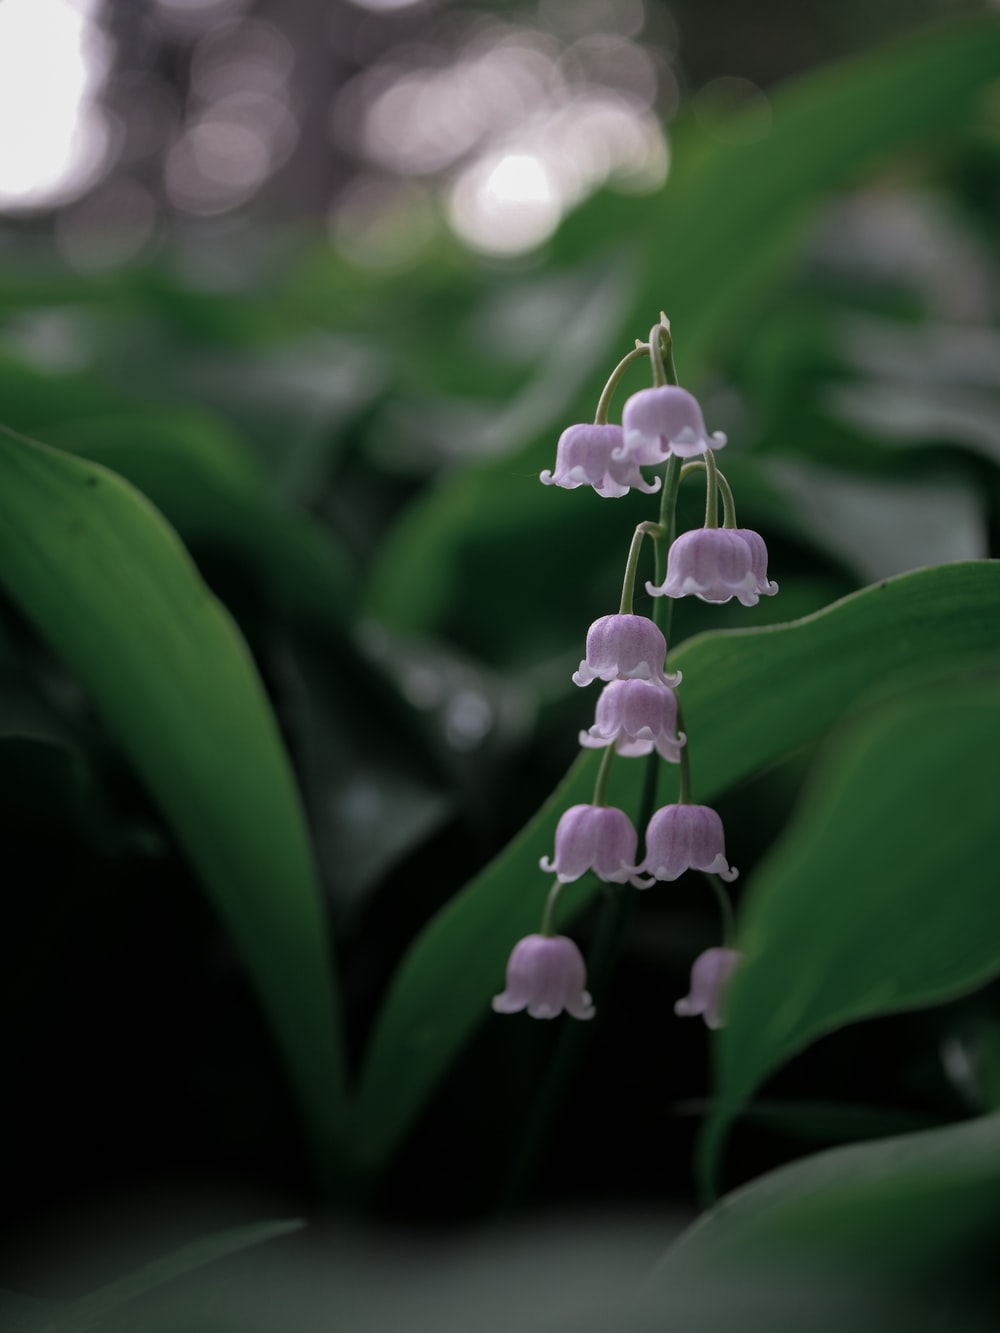 Lily Of The Valley Flower Pictures Download Free Images On Unsplash